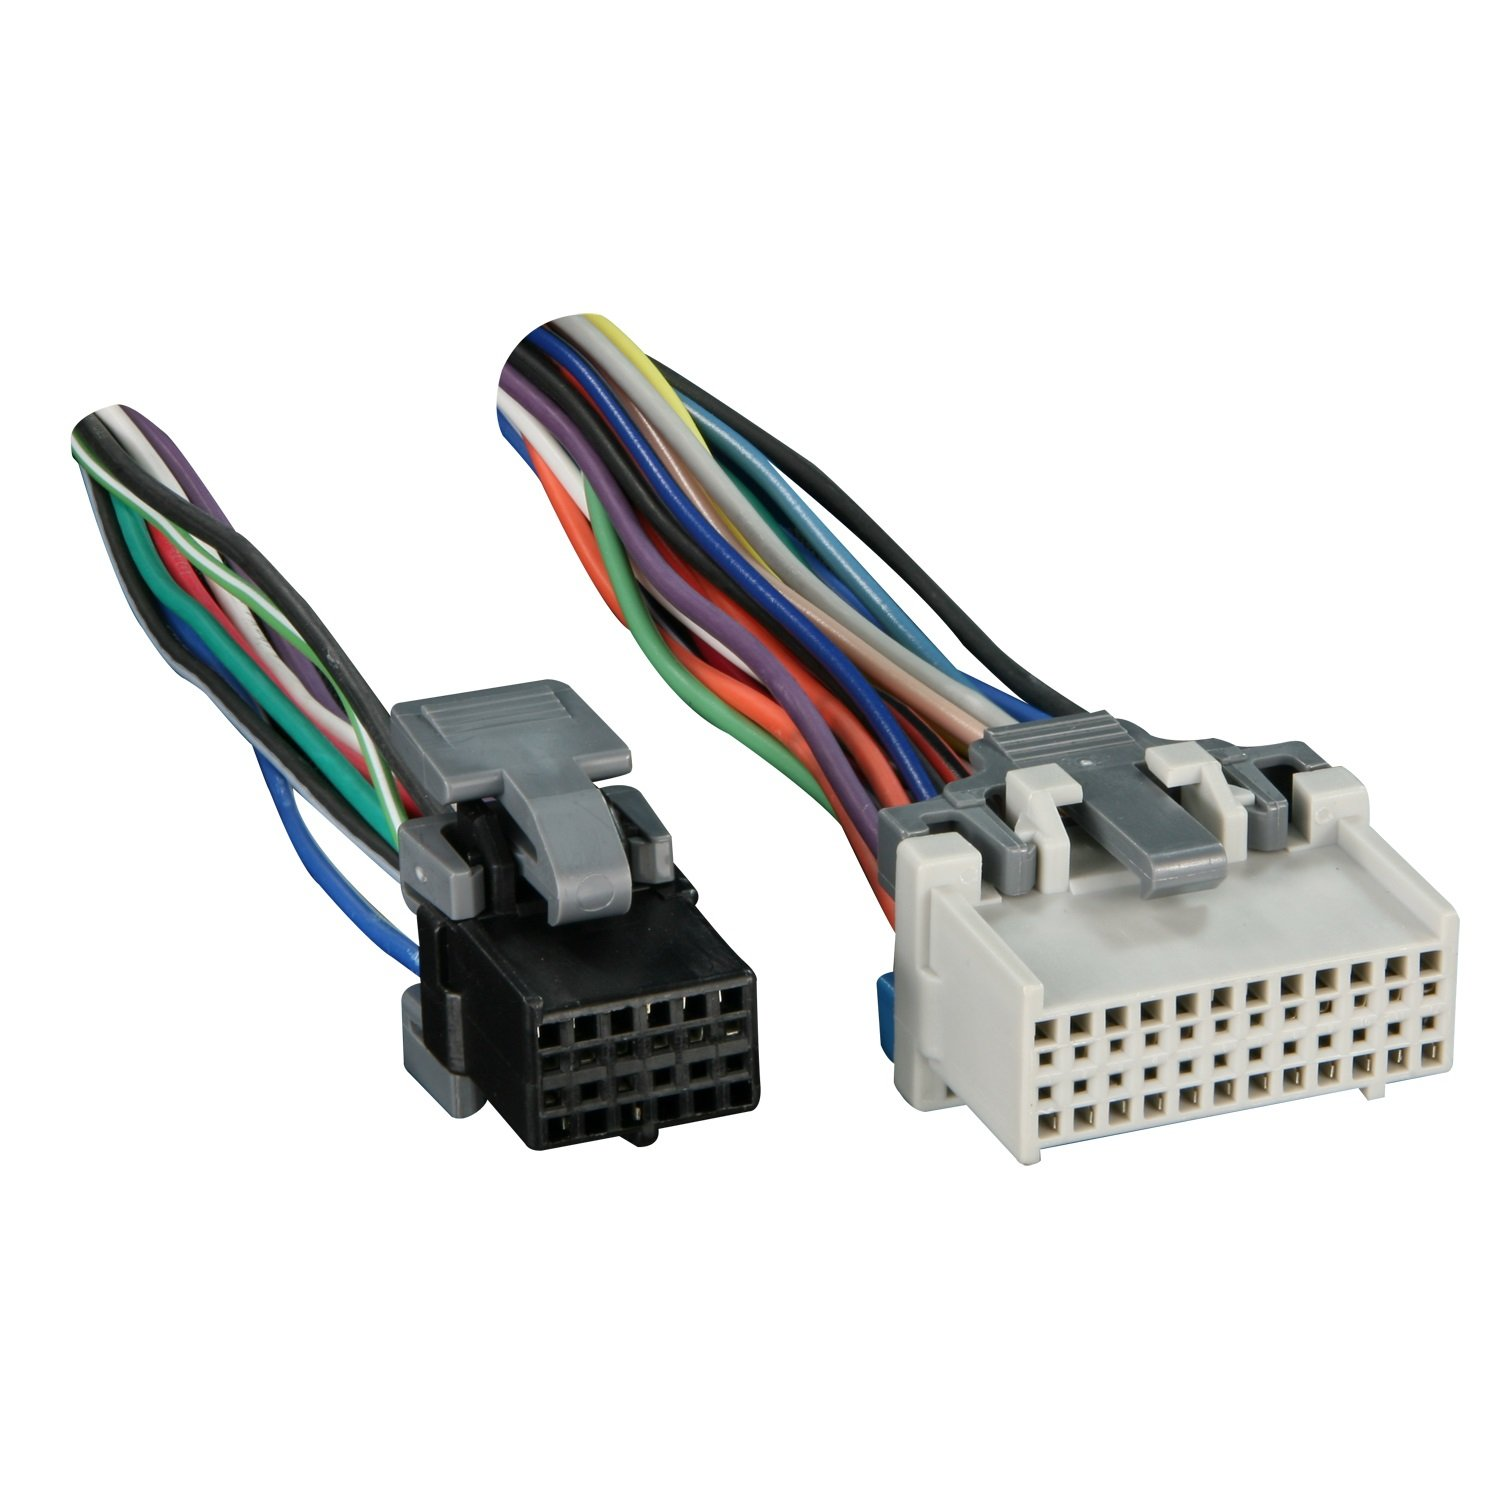 711log4bdML._SL1500_ amazon com metra turbowires 71 2003 1 wiring harness car electronics radio wiring harness for 2004 chevy impala at couponss.co